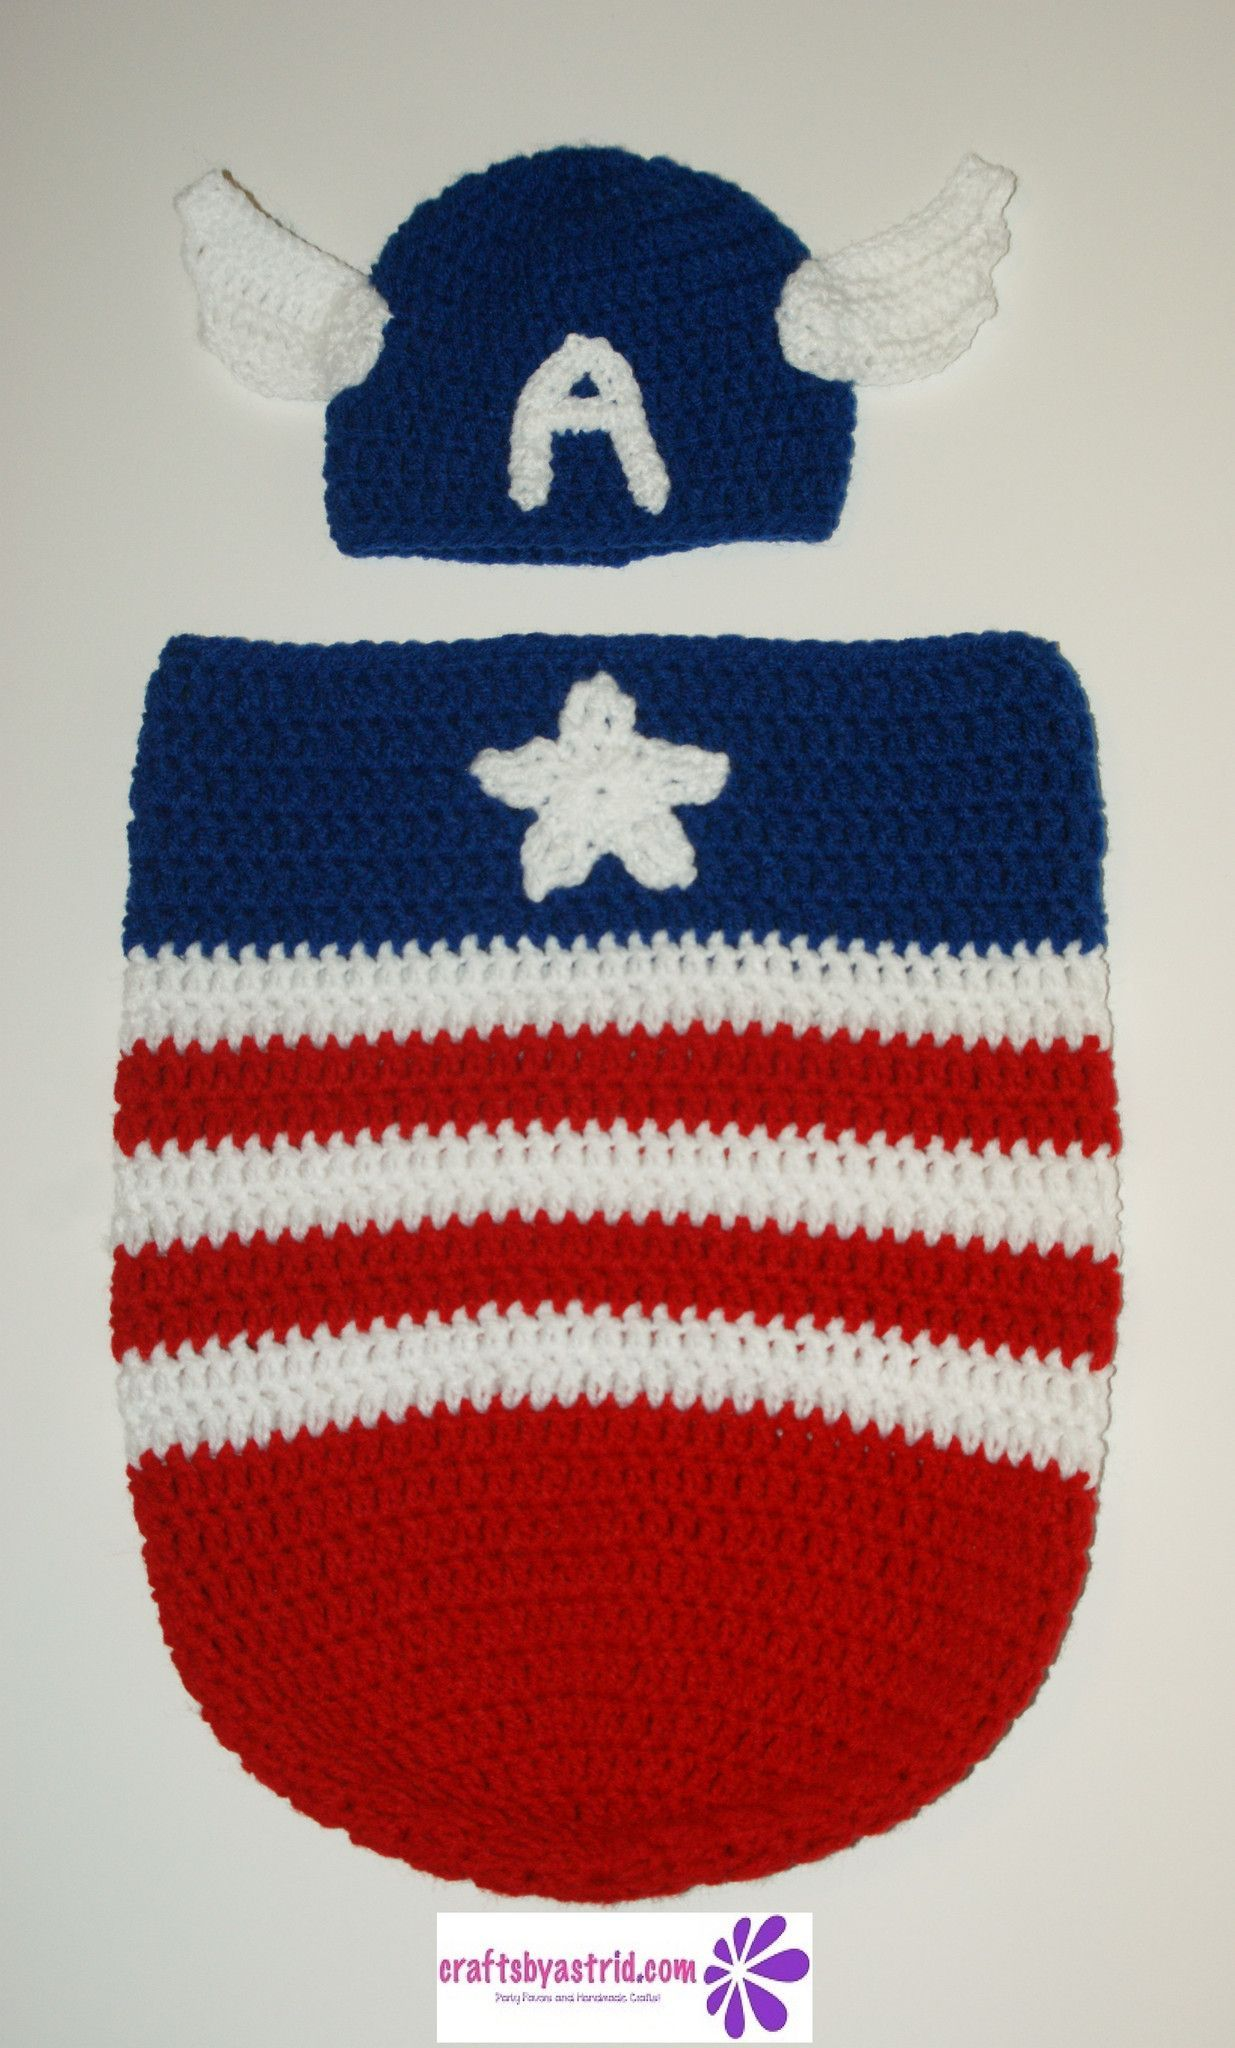 Captain America Crochet Baby Cocoon & Hat | Crochet Things ...